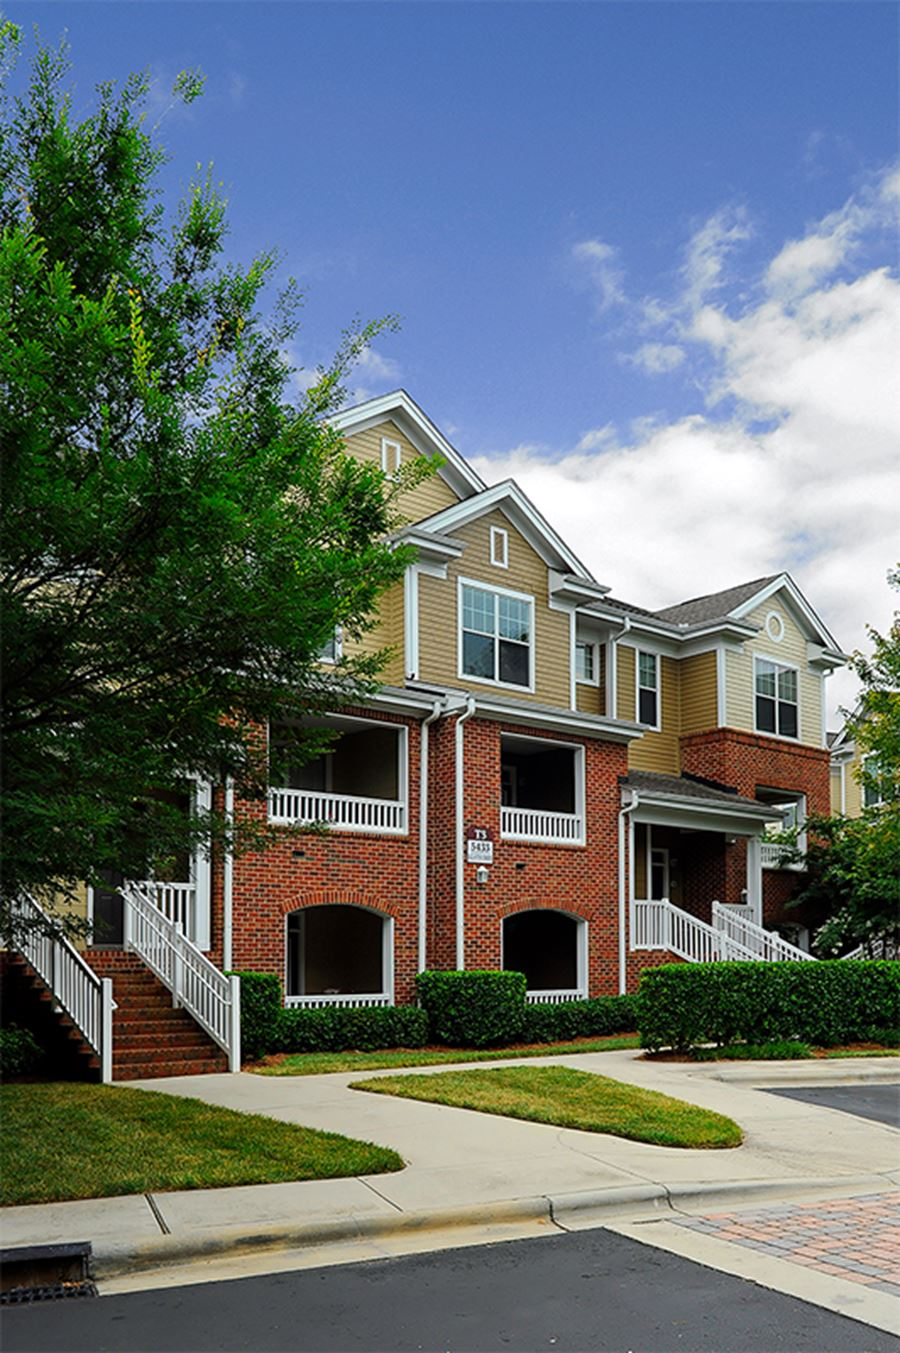 Apartments for rent in charlotte nc promenade park - 1 bedroom apartment in charlotte nc ...